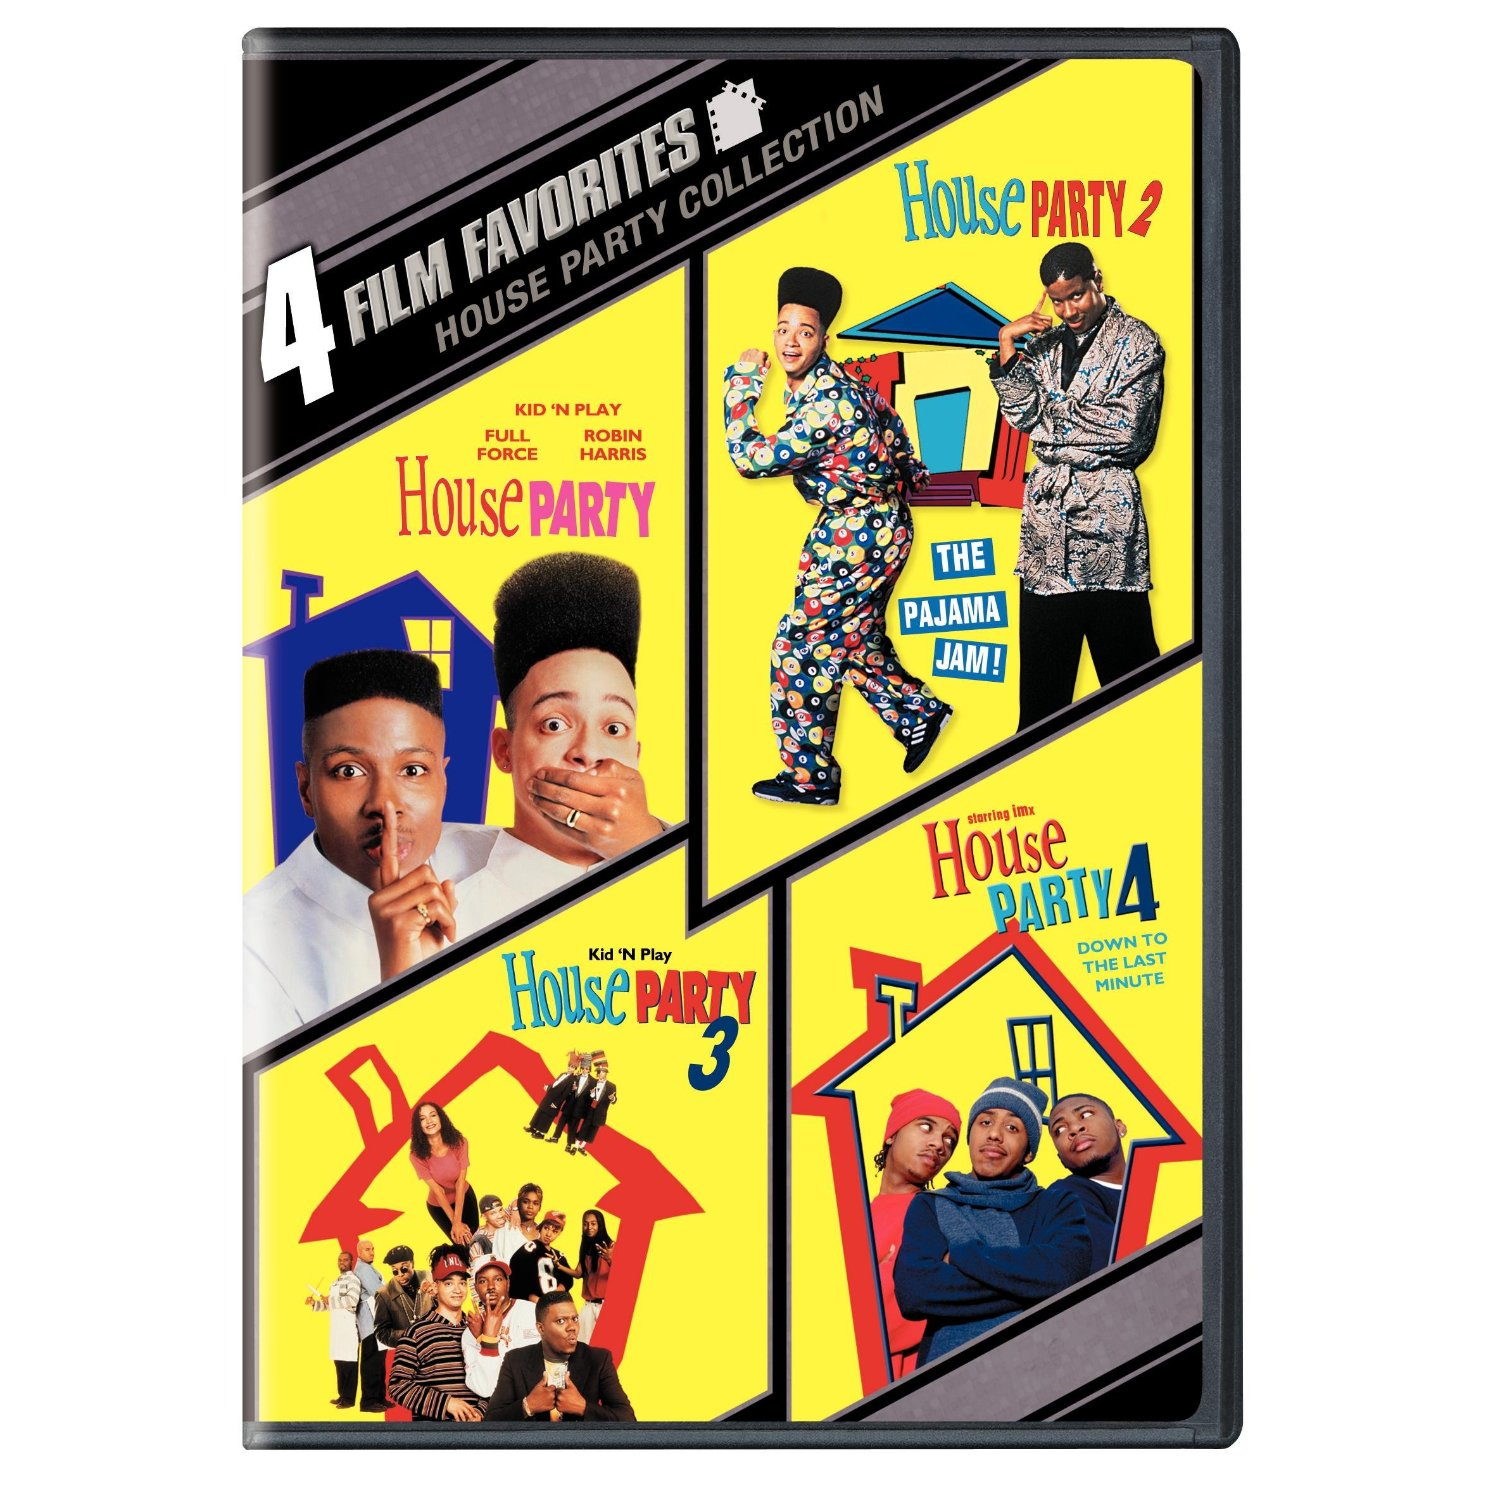 House Party 2 Dvd Related Keywords Suggestions Long tail keywords